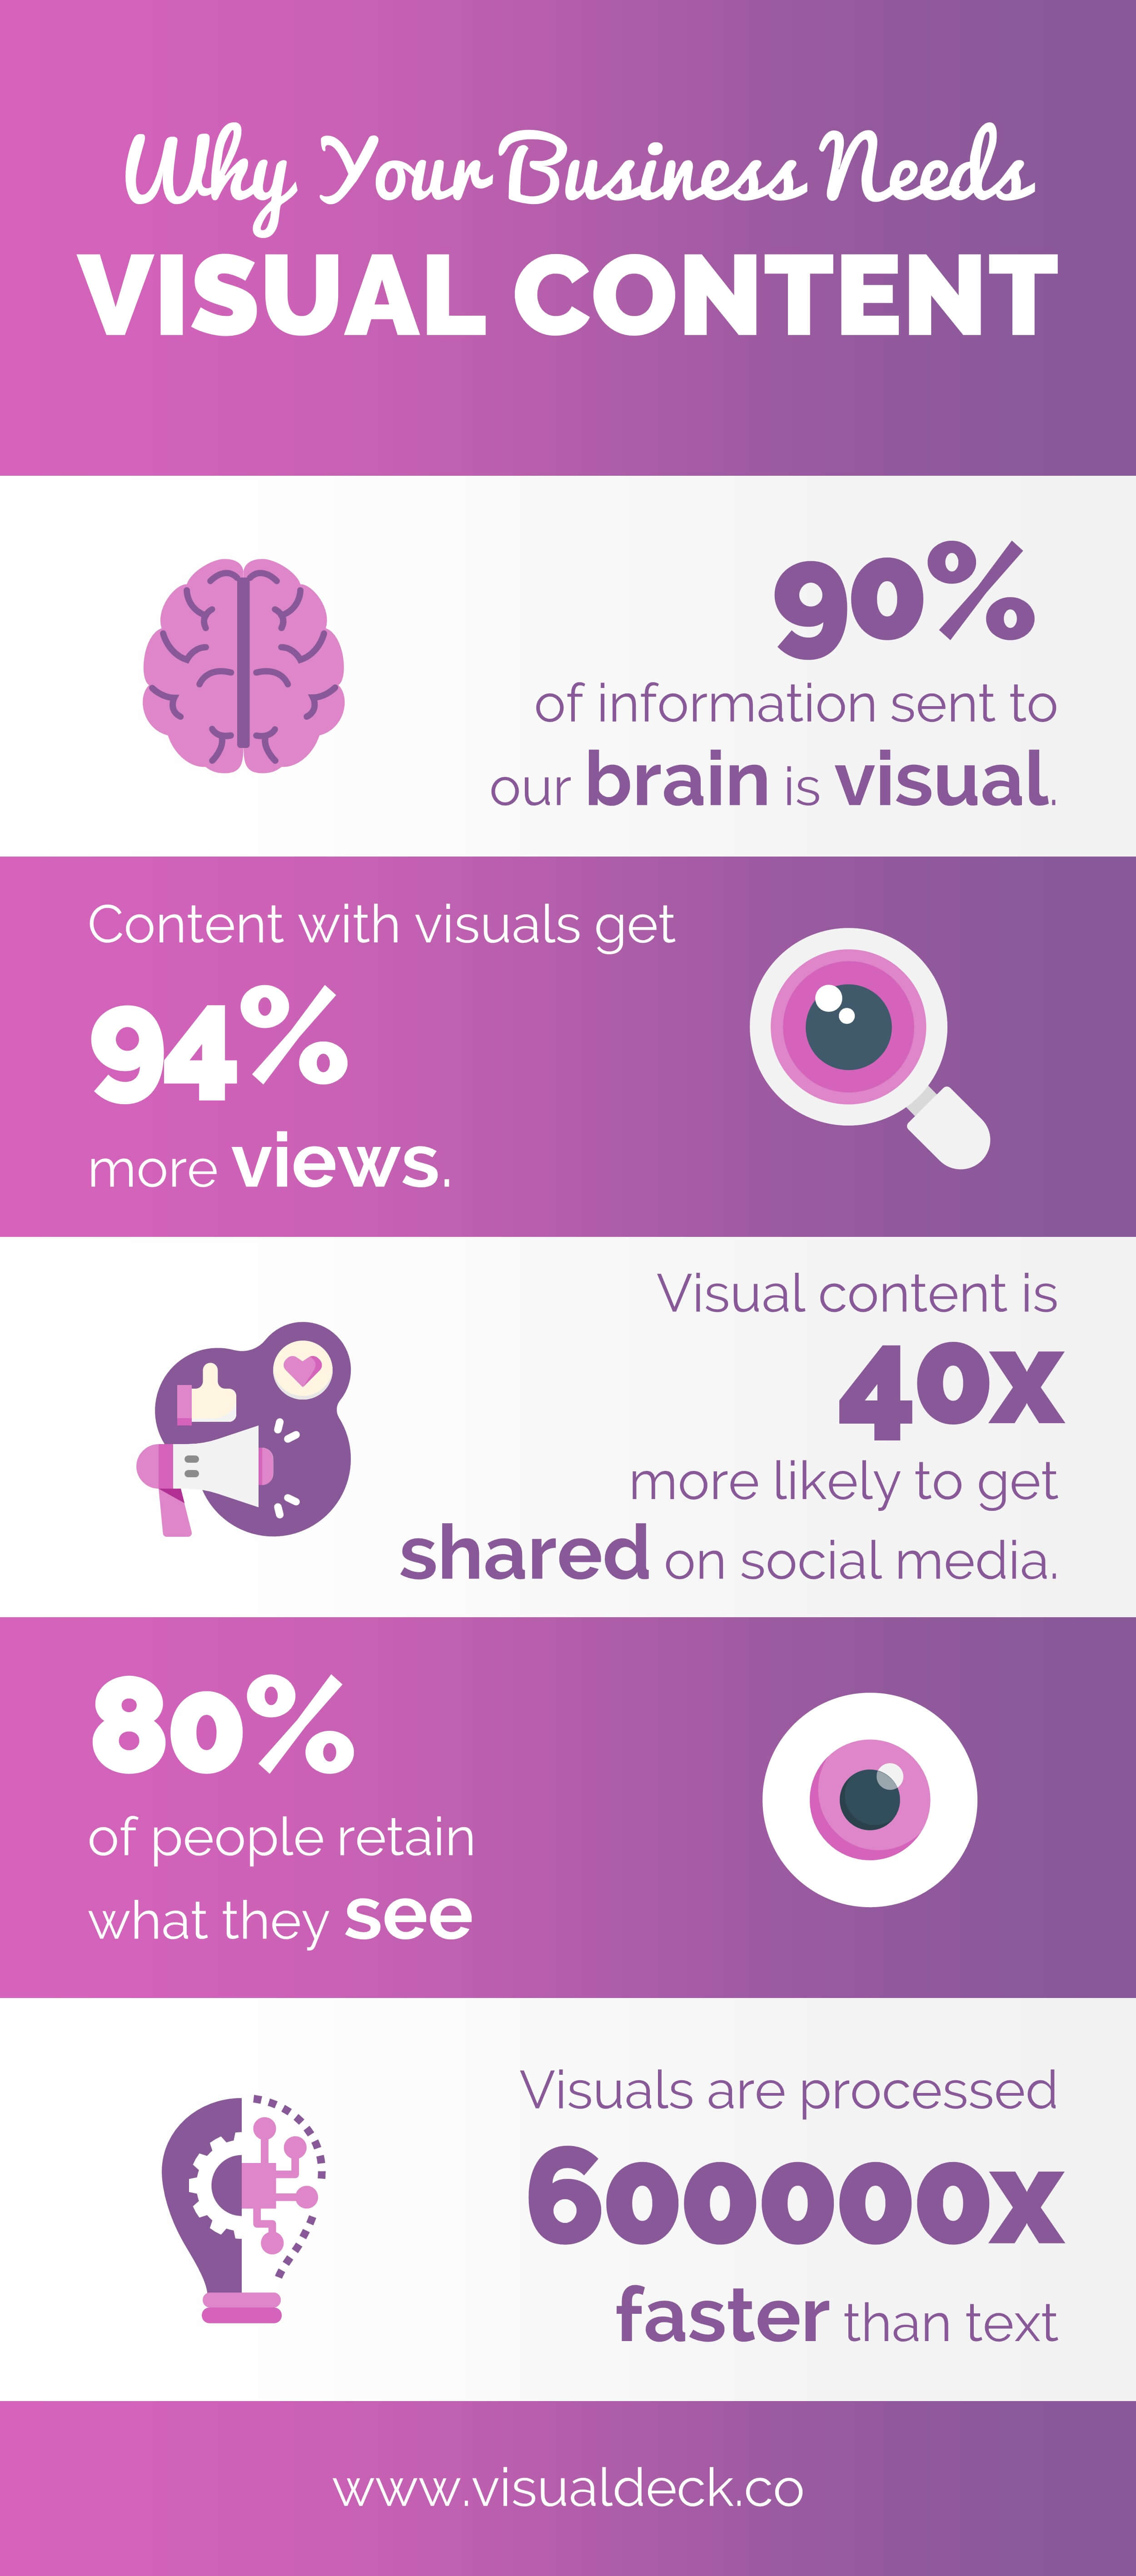 Why Your Business Needs Visual Content